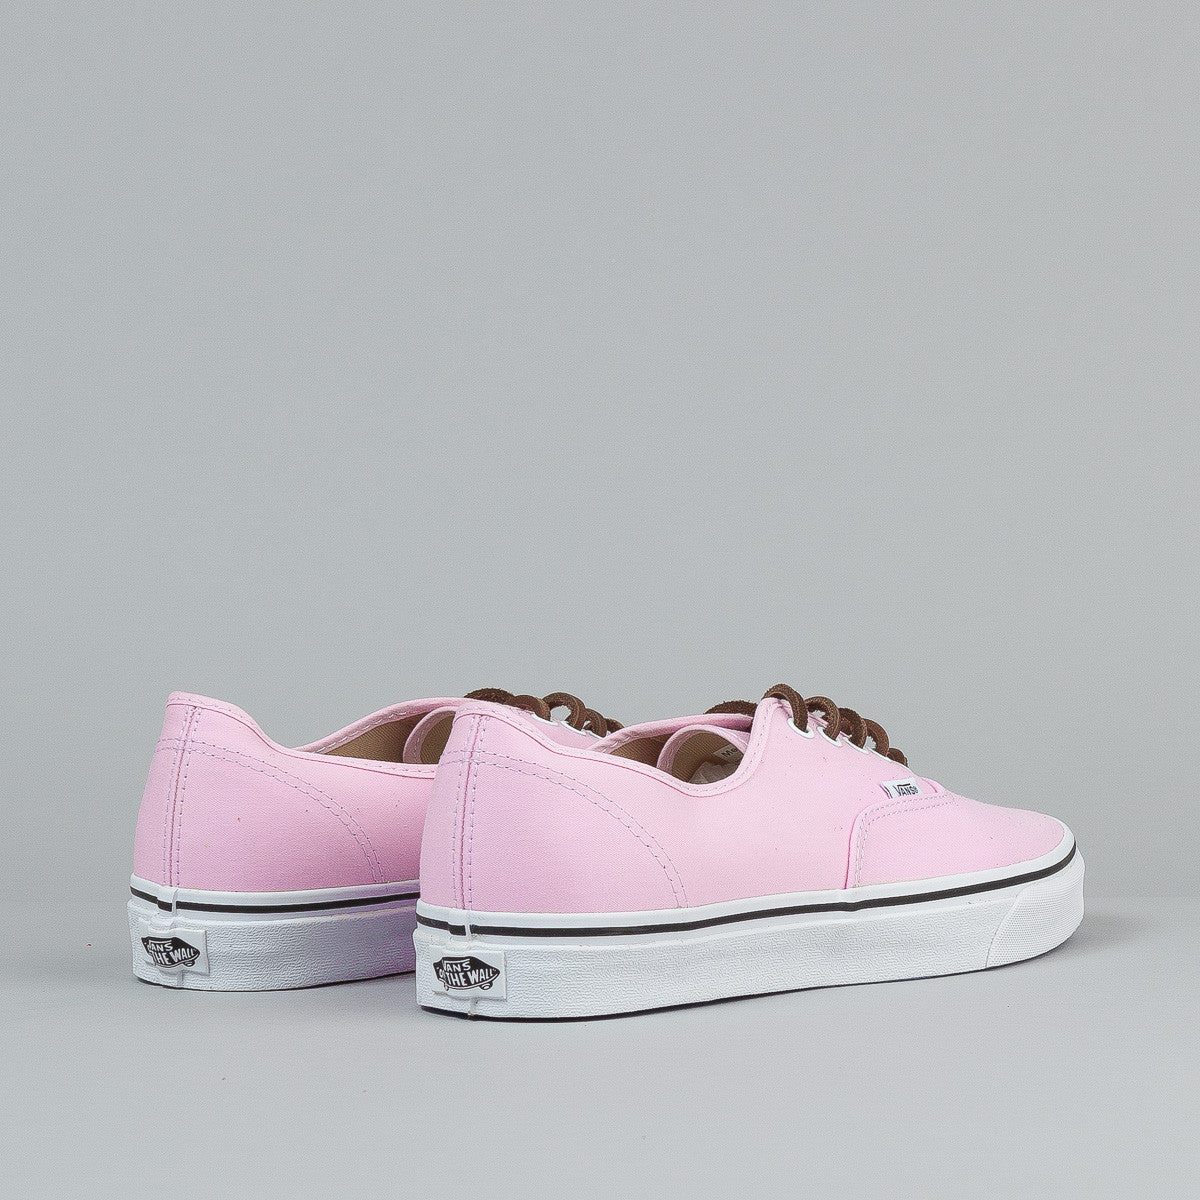 Vans Authentic CA Shoes - (Brushed Twill) Pink Mist